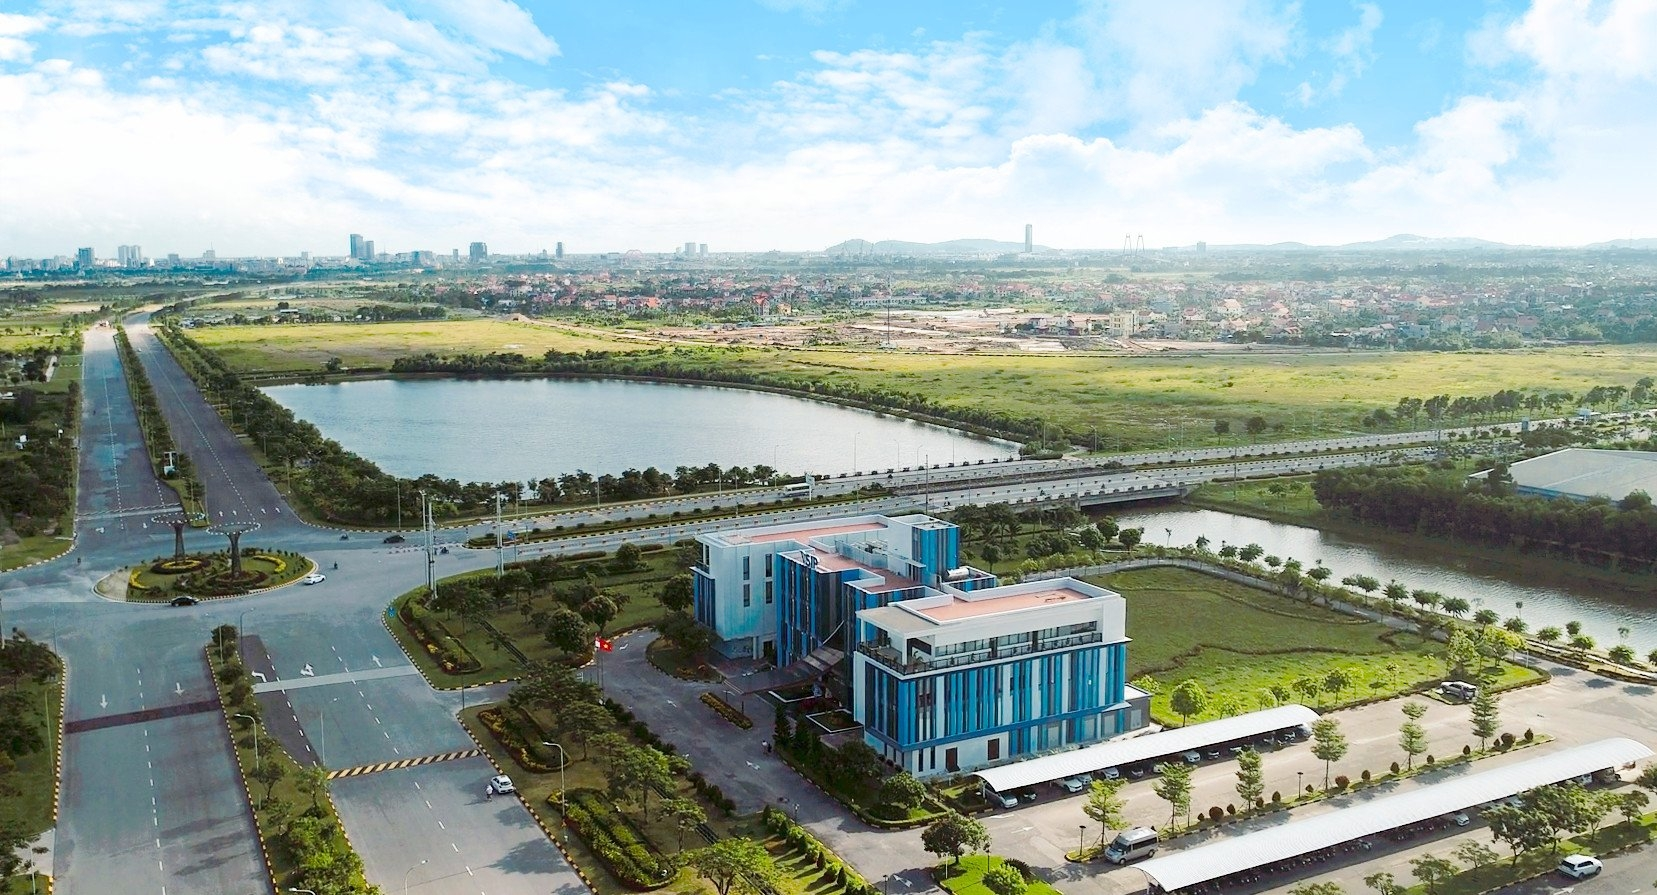 VSIP Haiphong – 10-year journey to affirm position in the port city of Haiphong